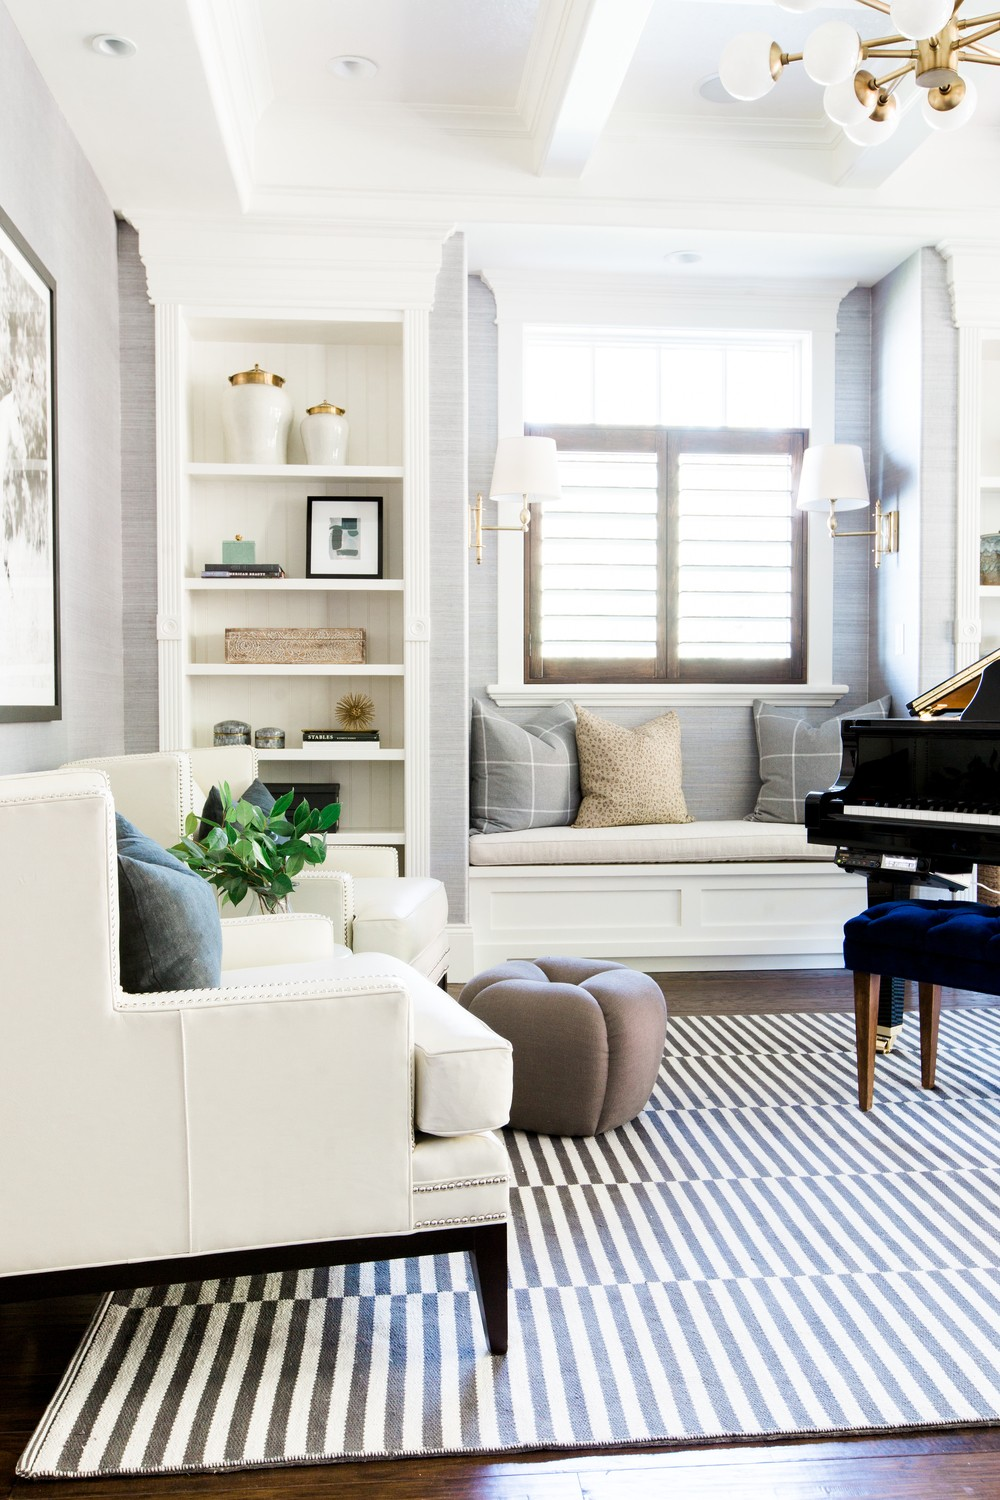 Mountainside remodel piano room || Studio McGee